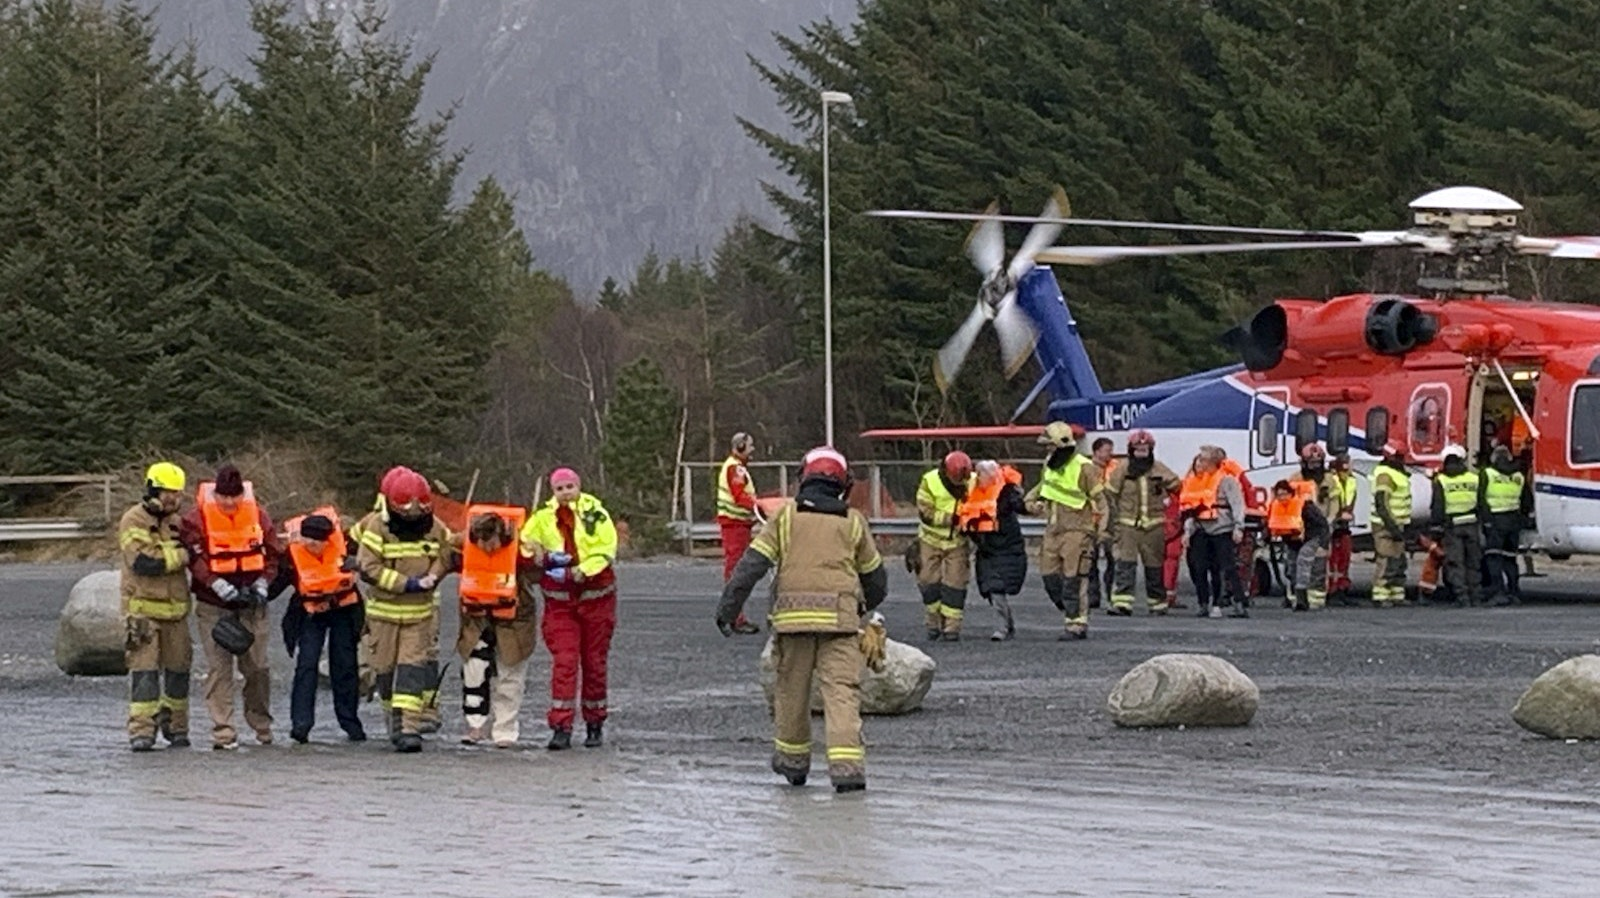 Britons tell of 'frightening' evacuation from cruise ship off Norway's coast